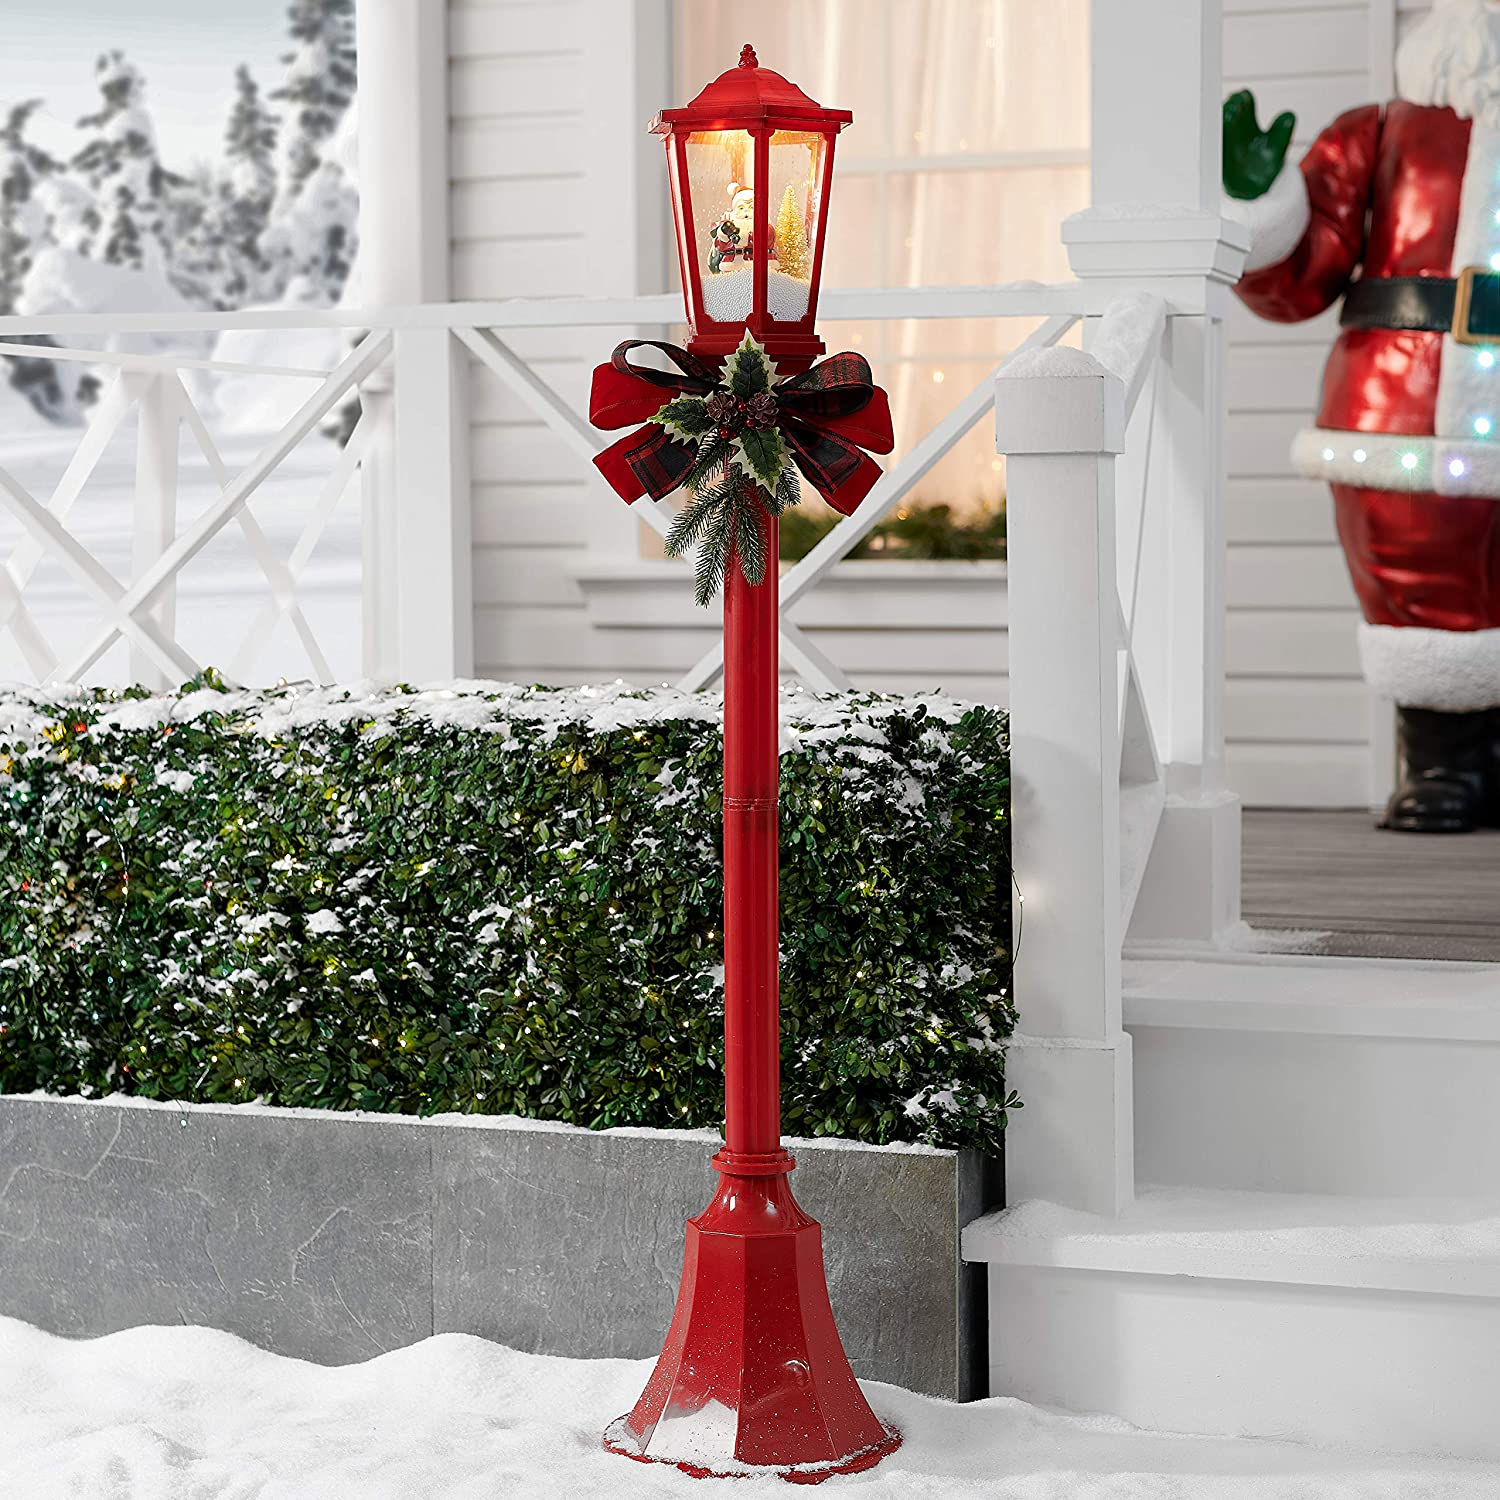 Amazon Com Nh Bright Attractive And Elegant 56 Snow Blowing Santa Red Christmas Lamppost Decoration Light Up And Play Music Plays A Variety Of Holiday Melody Favorites To Get Everyone Into The